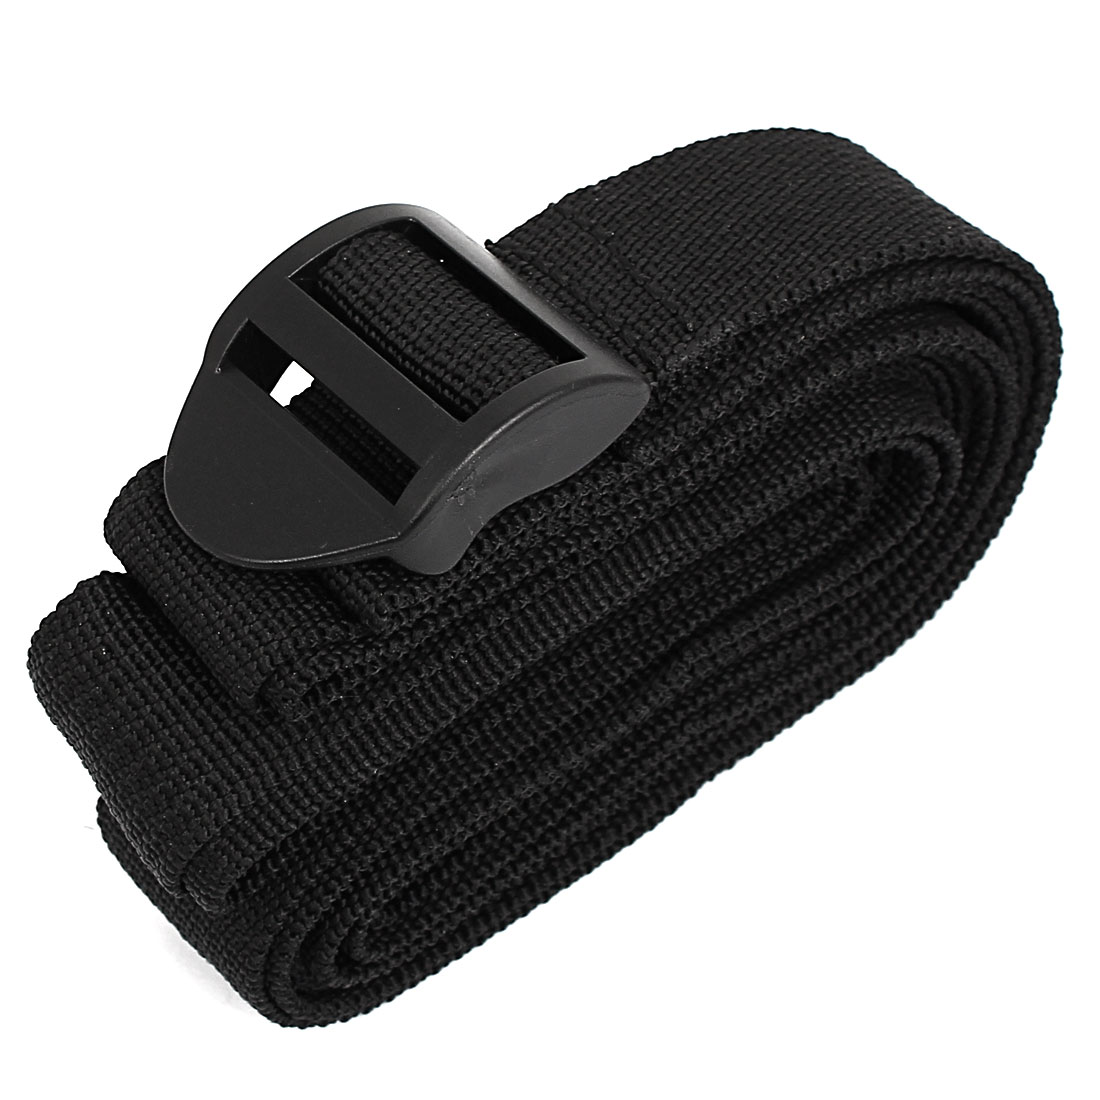 Plastic Buckle Luggage Suitcase Backpack Baggage Adjustable Belt Strap Black 3 Meter